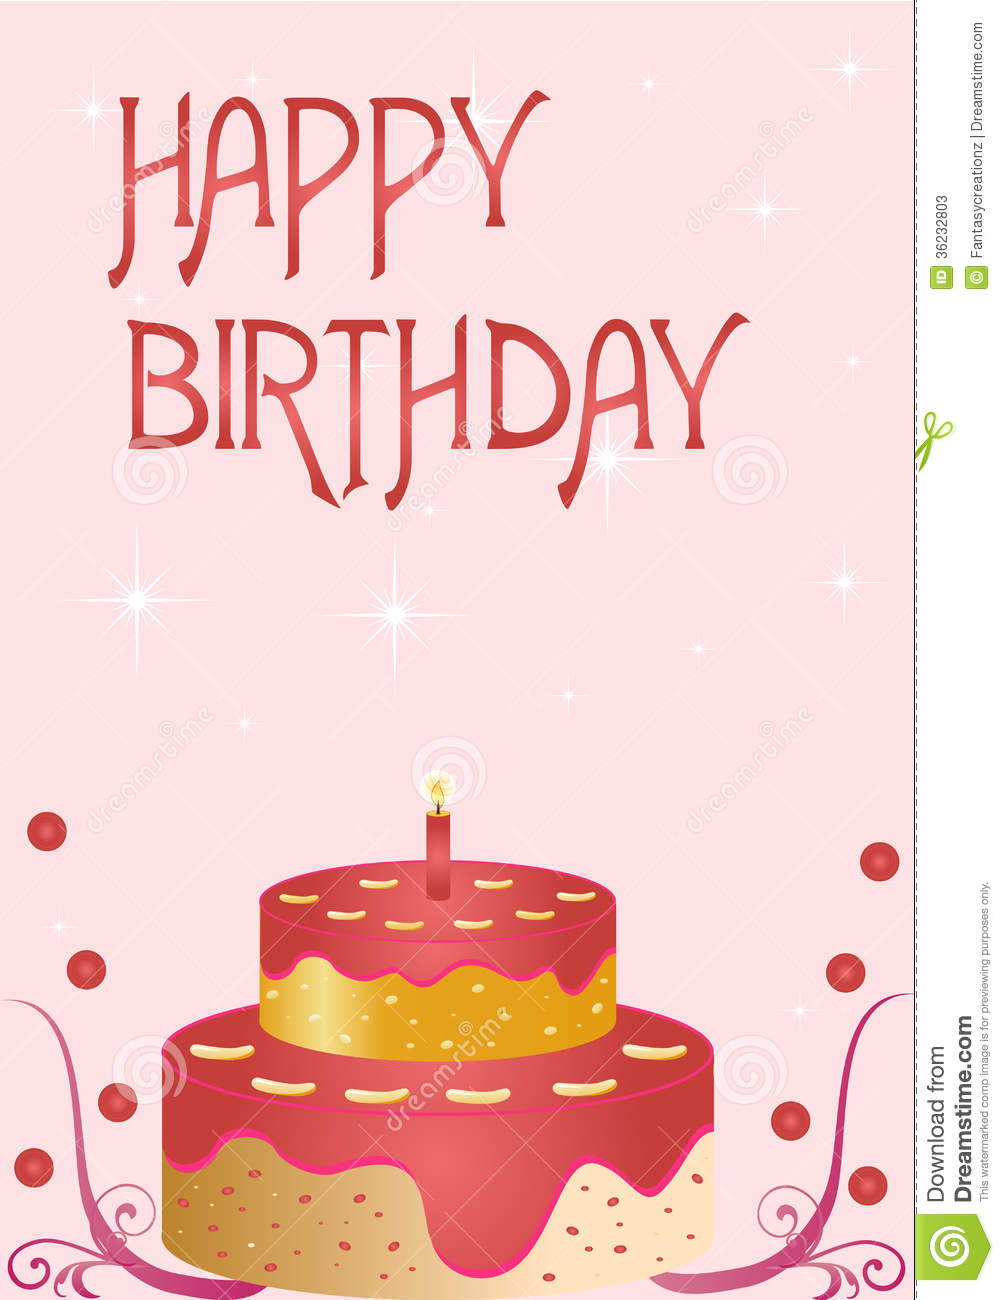 greeting cards for birthday design ; design-birthday-card-stunning-background-completing-with-unique-and-simple-design-adding-by-one-delicious-cake-and-red-topping-gon-the-cake